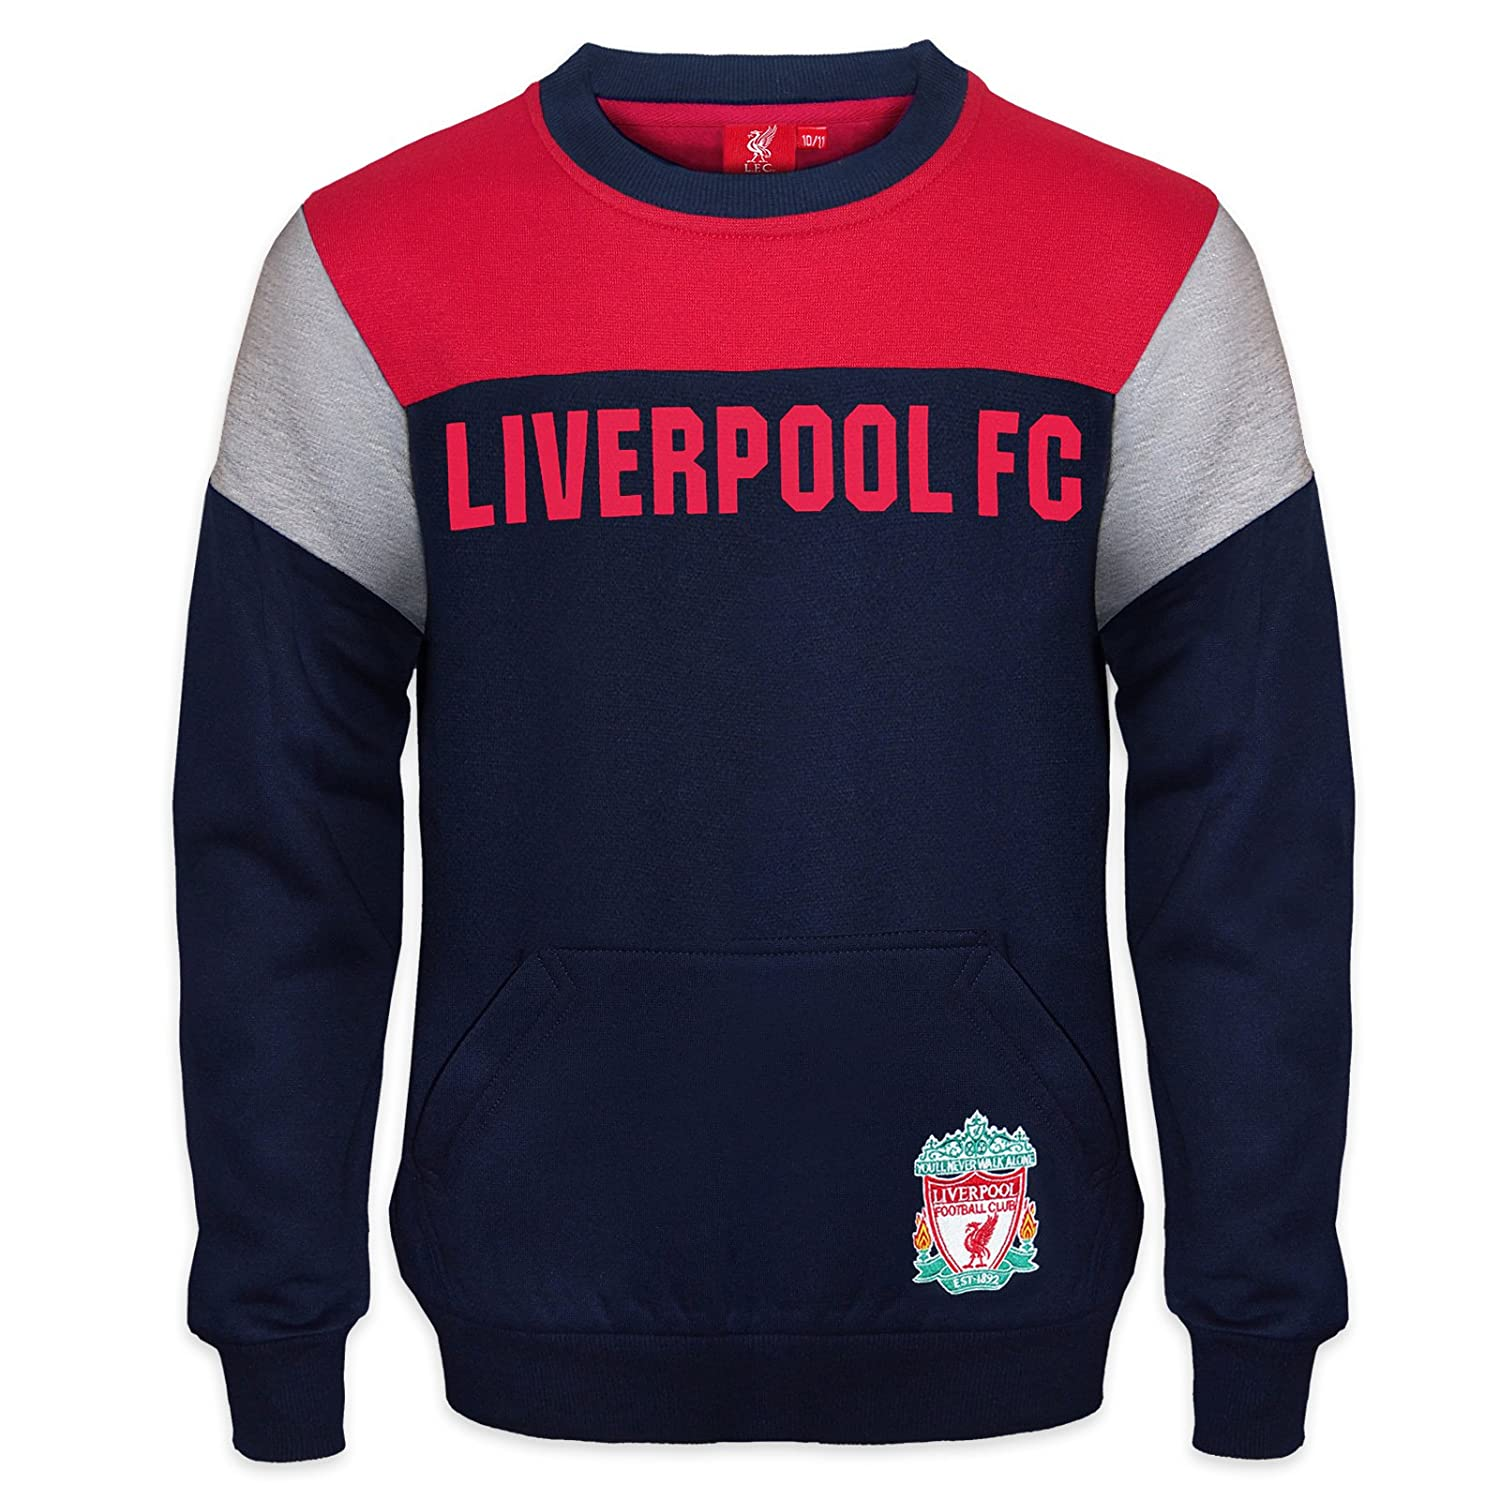 825506c889a Amazon.com: Liverpool FC Official Soccer Gift Boys Crest Sweatshirt Top  Navy Blue: Clothing